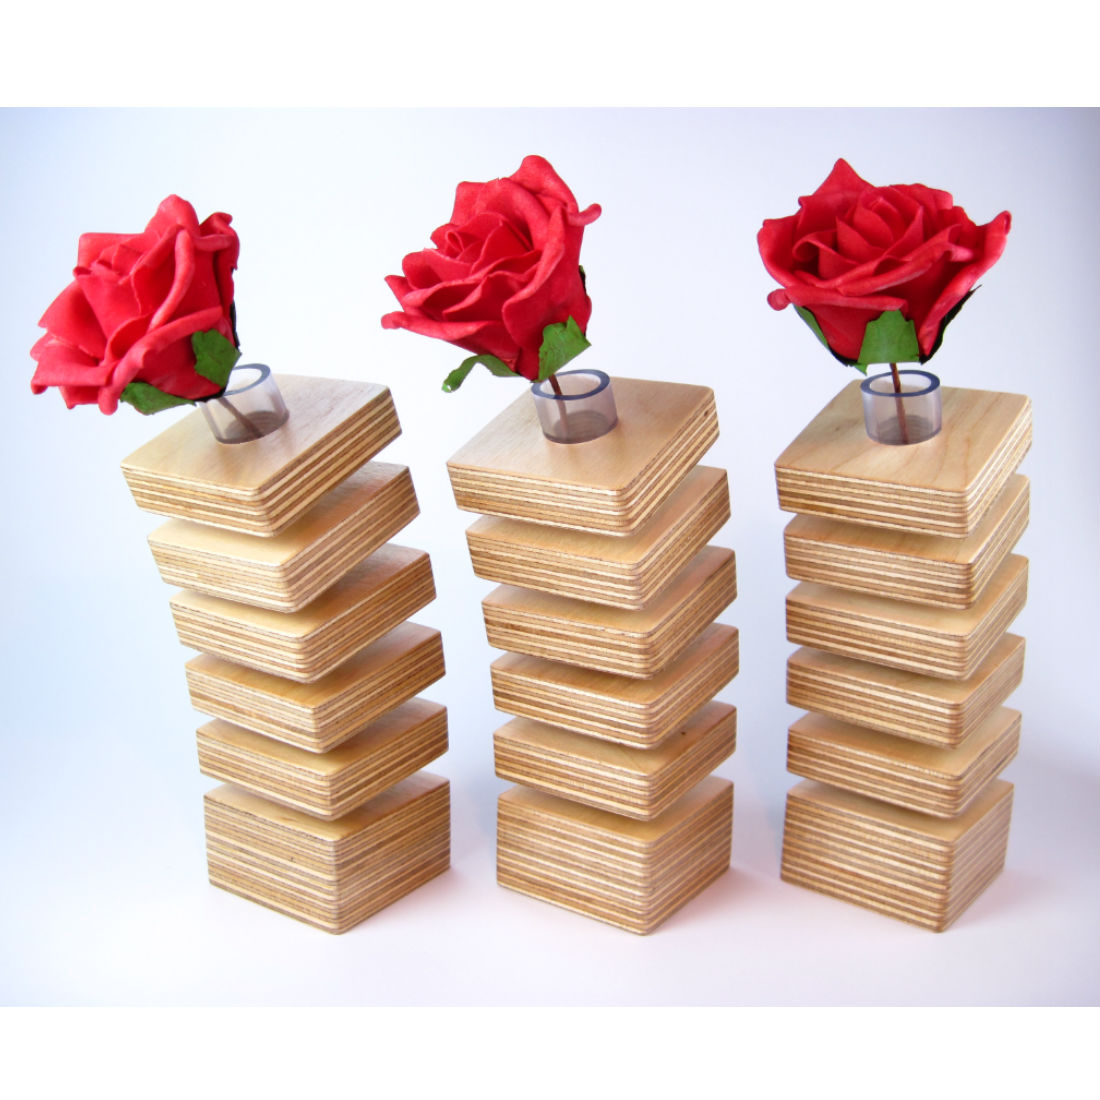 Spring Vases with roses from brightblueliving.com